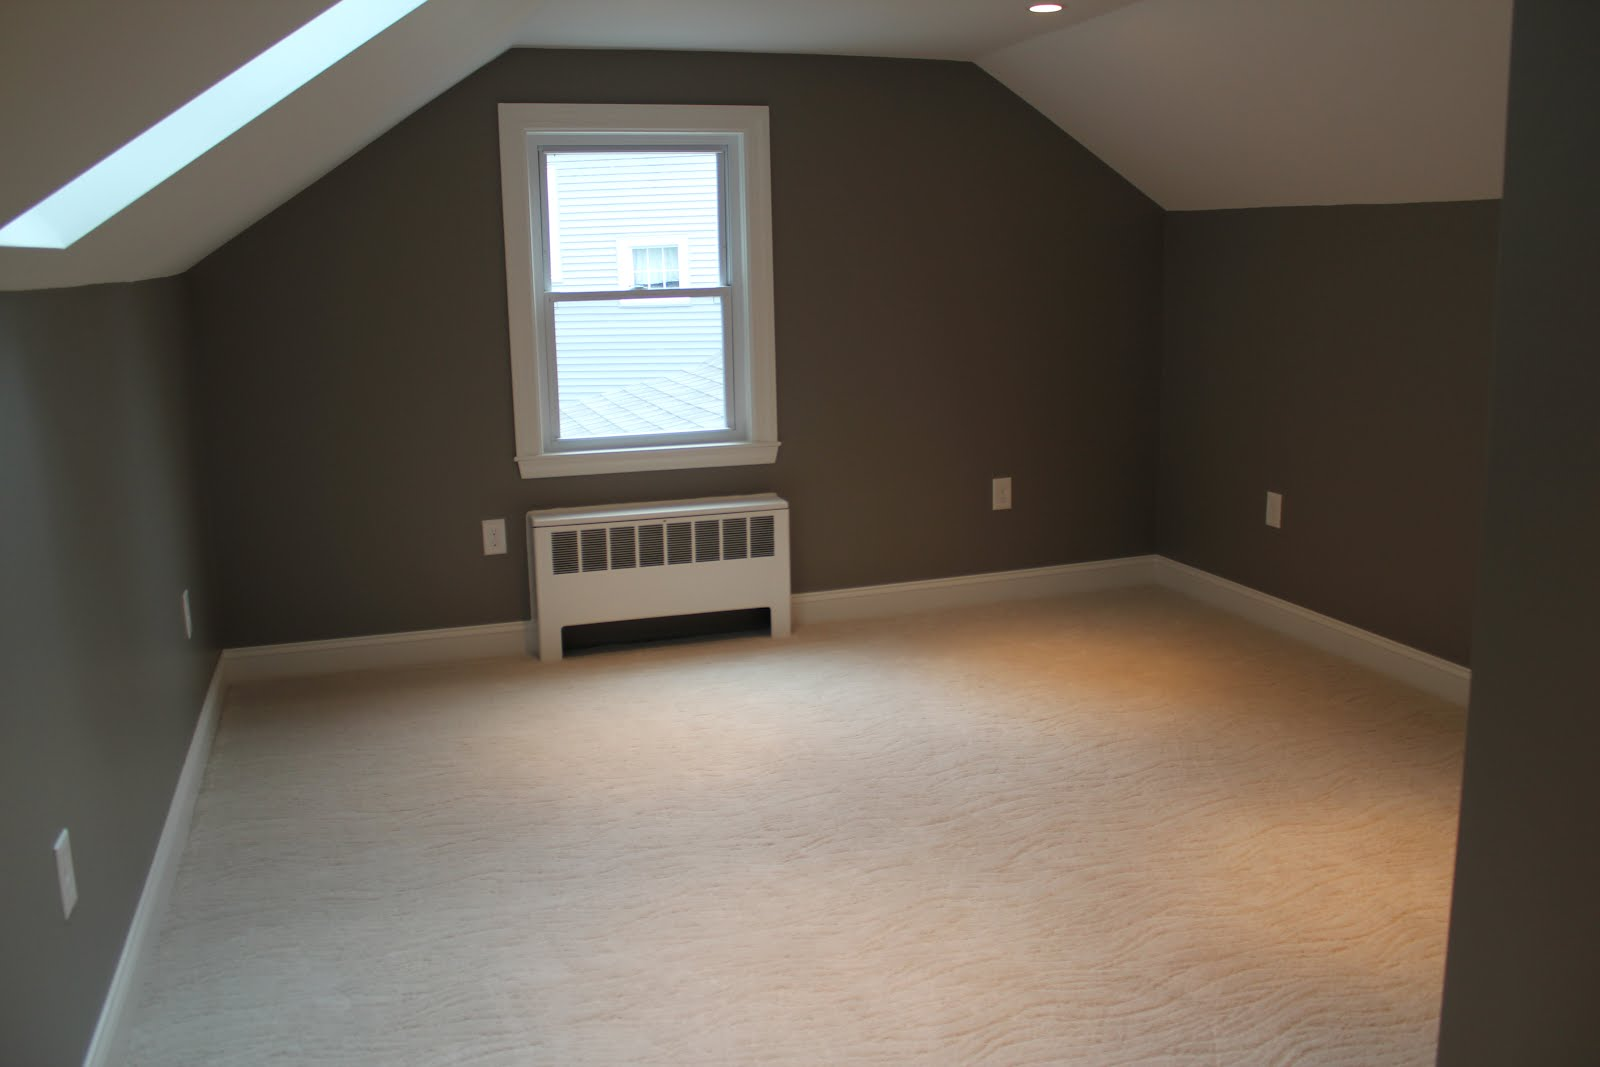 We don t  and oh  the budget was spent on finishing the room  William will  have a ball in his empty play space. Reno 366  roll out the white carpet